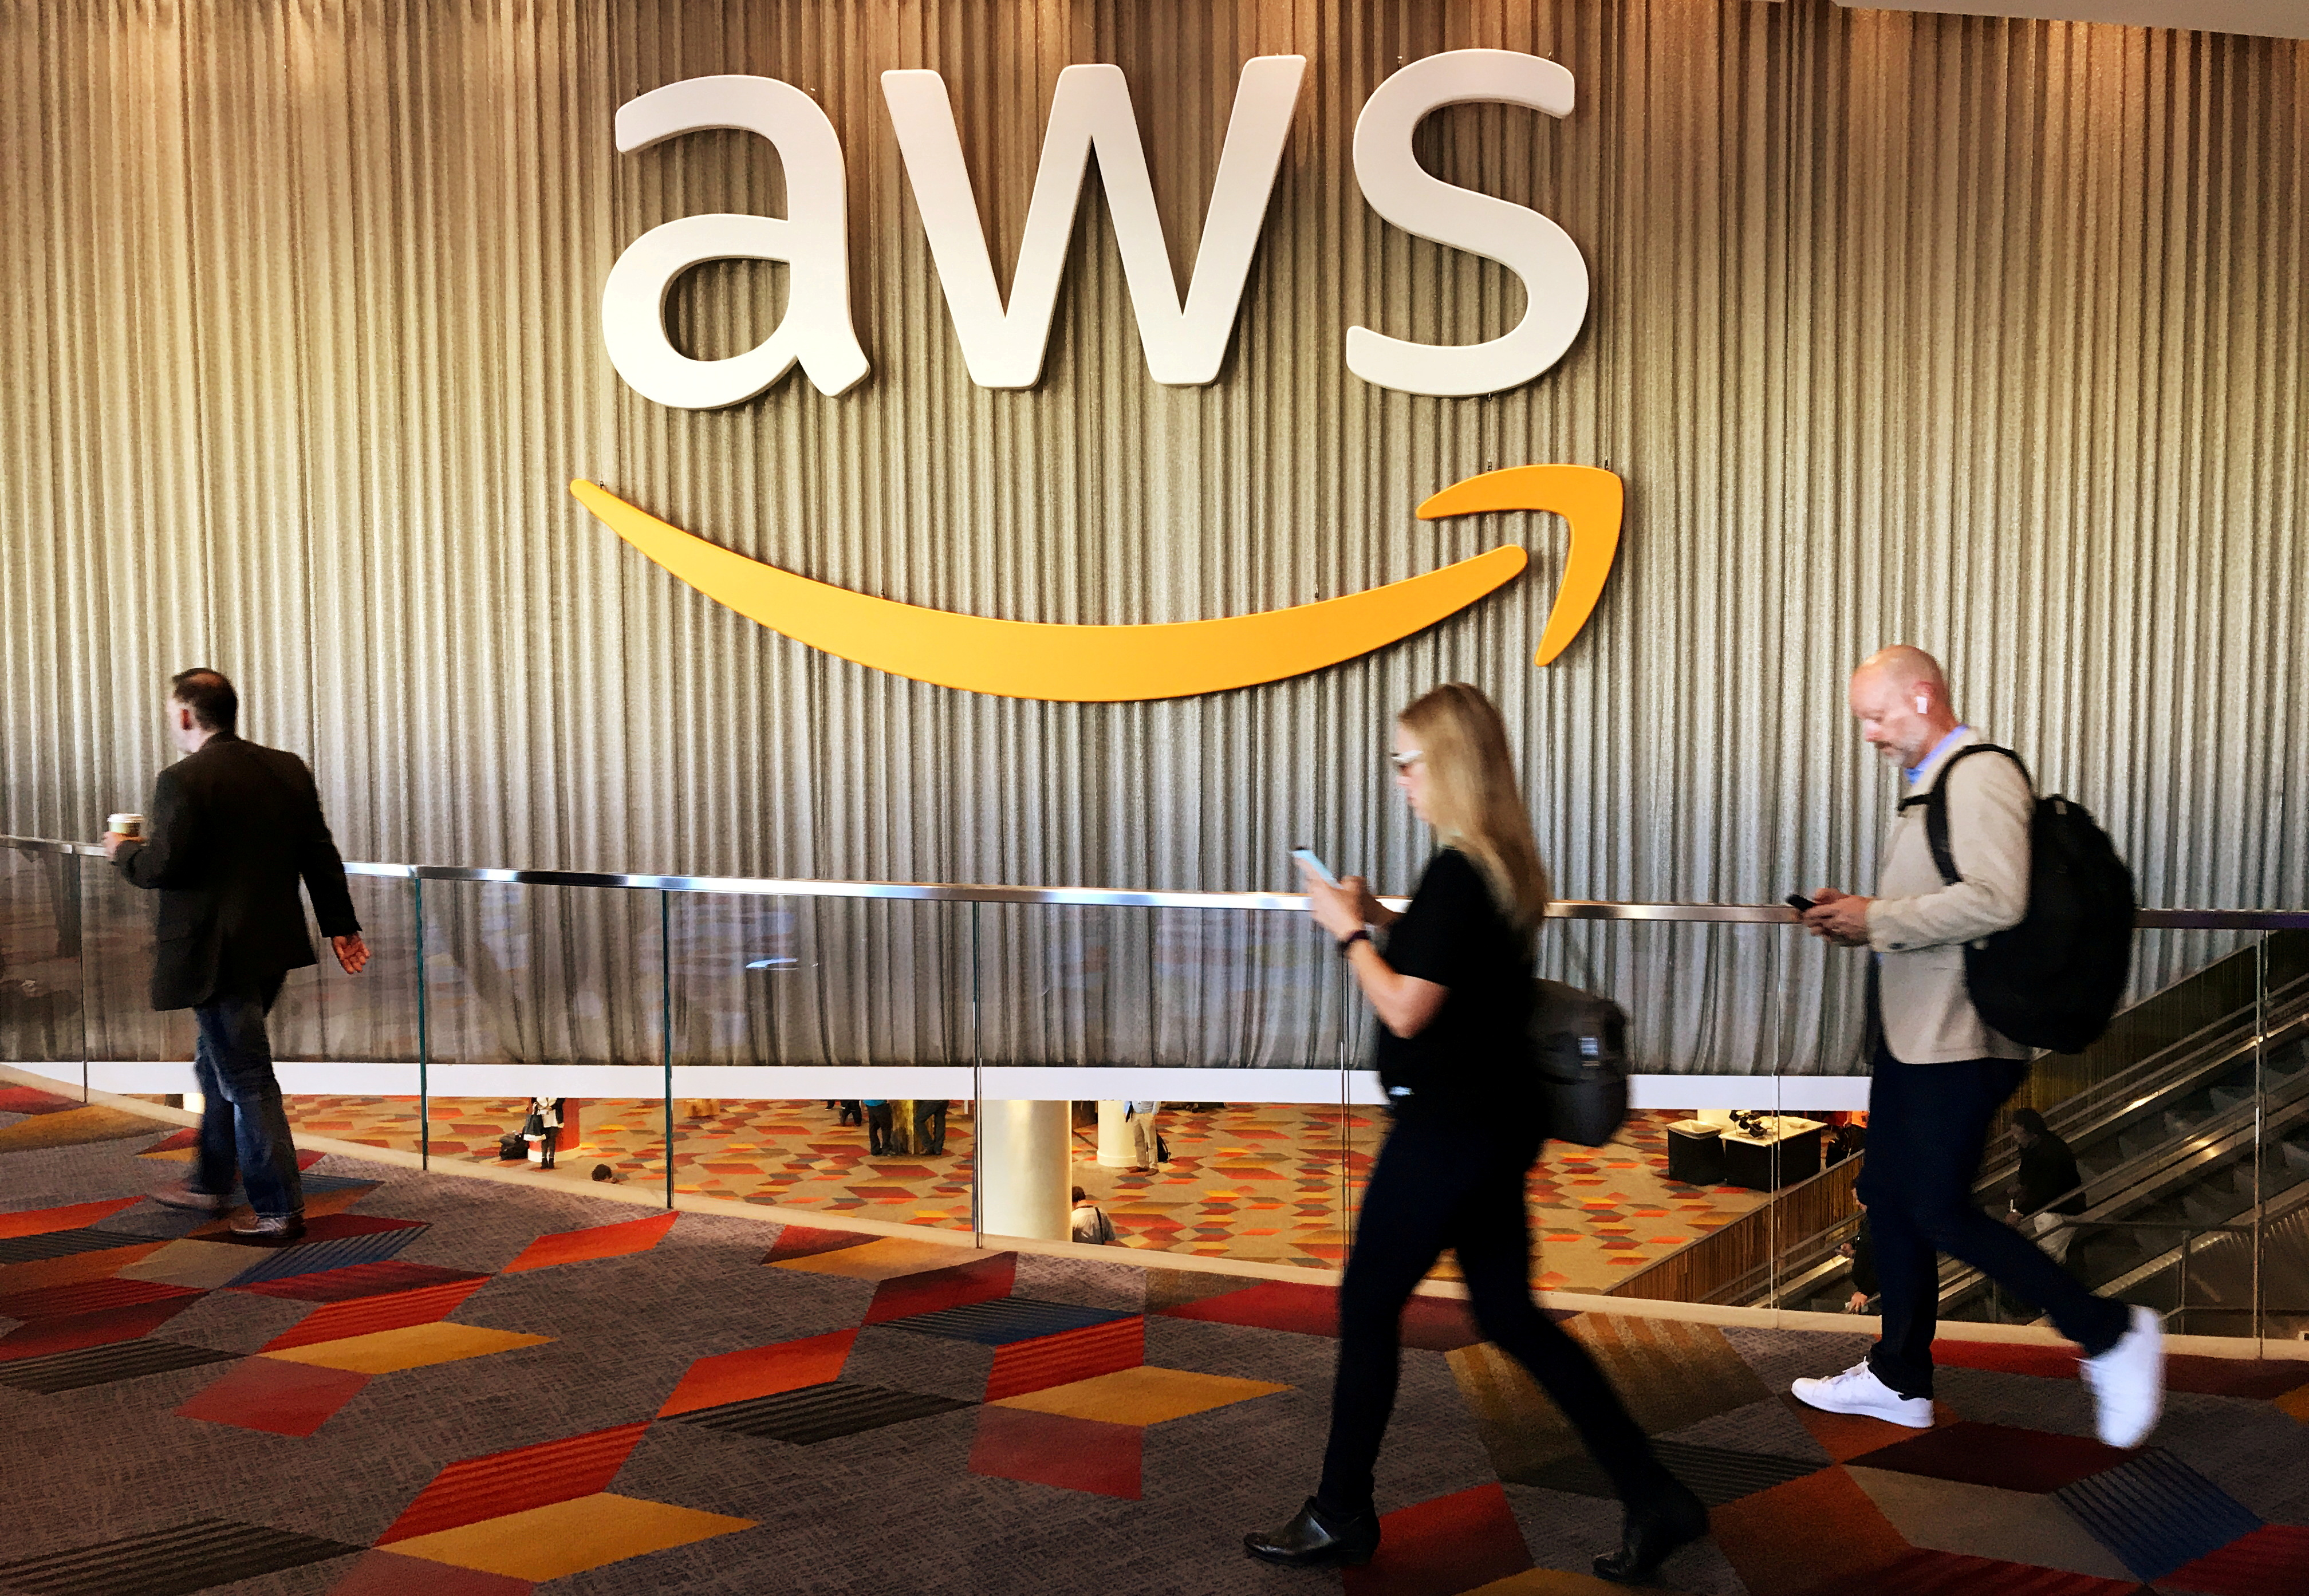 Attendees at Amazon.com Inc annual cloud computing conference walk past the Amazon Web Services logo in Las Vegas, Nevada, U.S., November 30, 2017. REUTERS/Salvador Rodriguez/File Photo